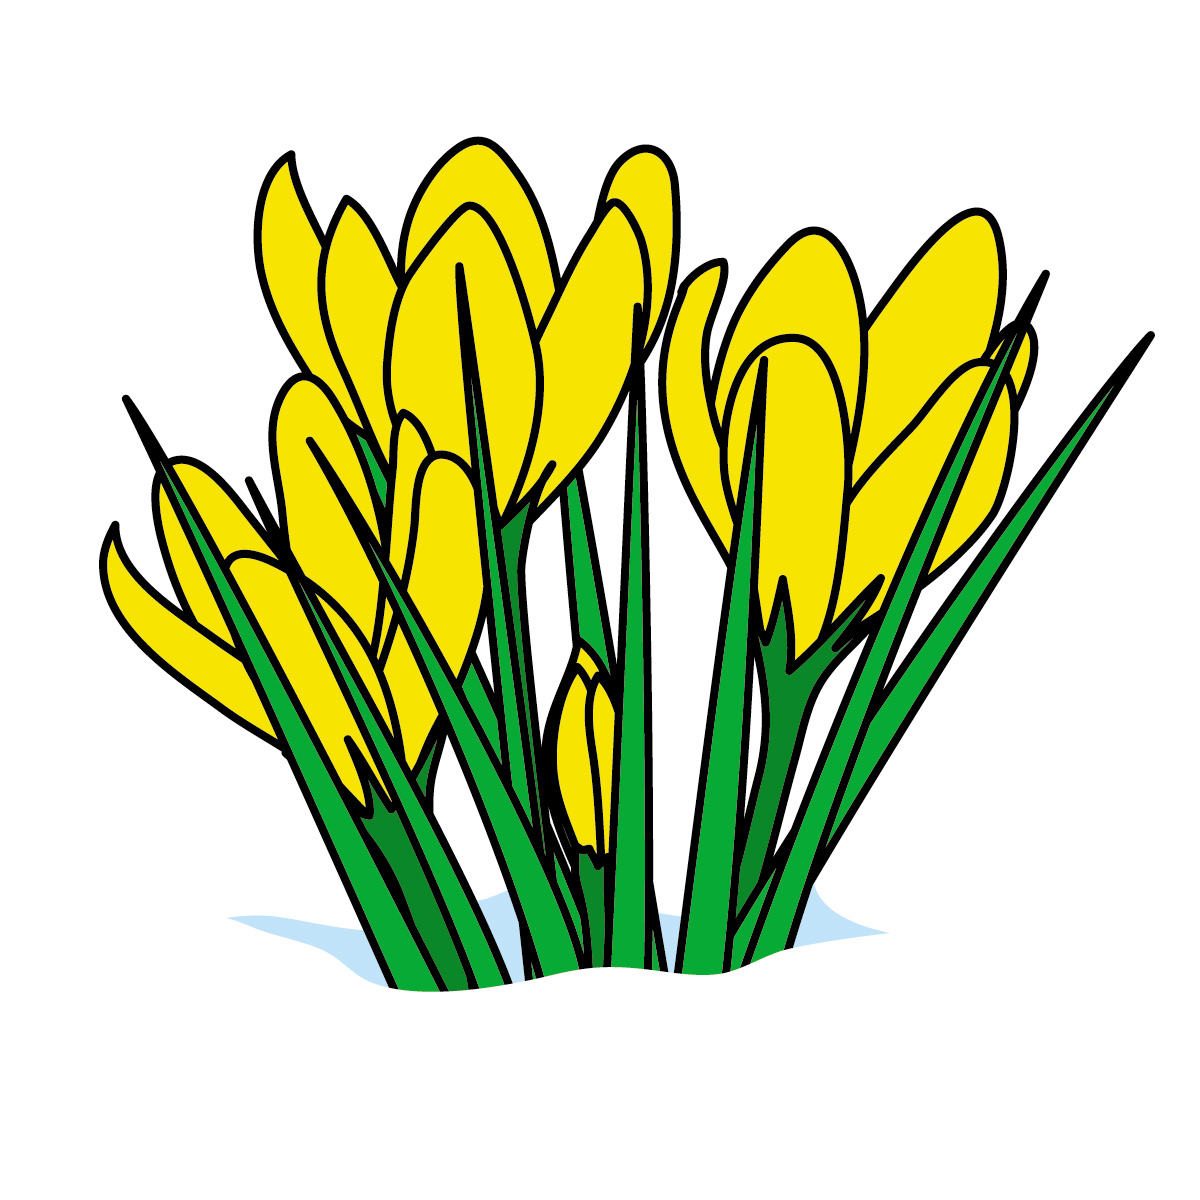 Easter Flowers Clipart at GetDrawings.com | Free for personal use ...